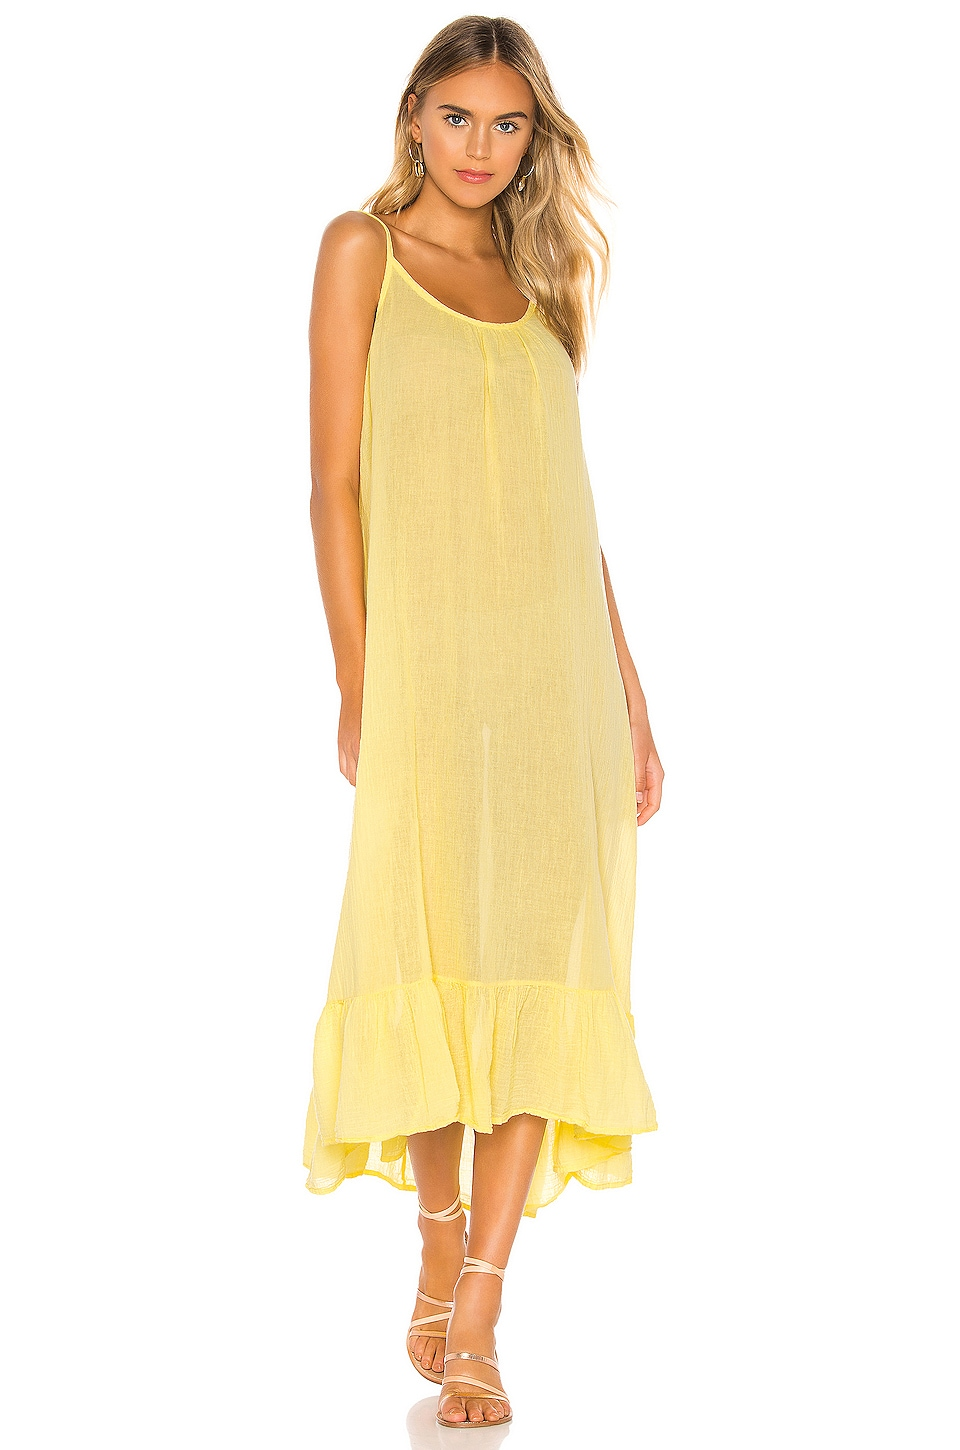 Bobi Gauze Midi Dress in Daffodil